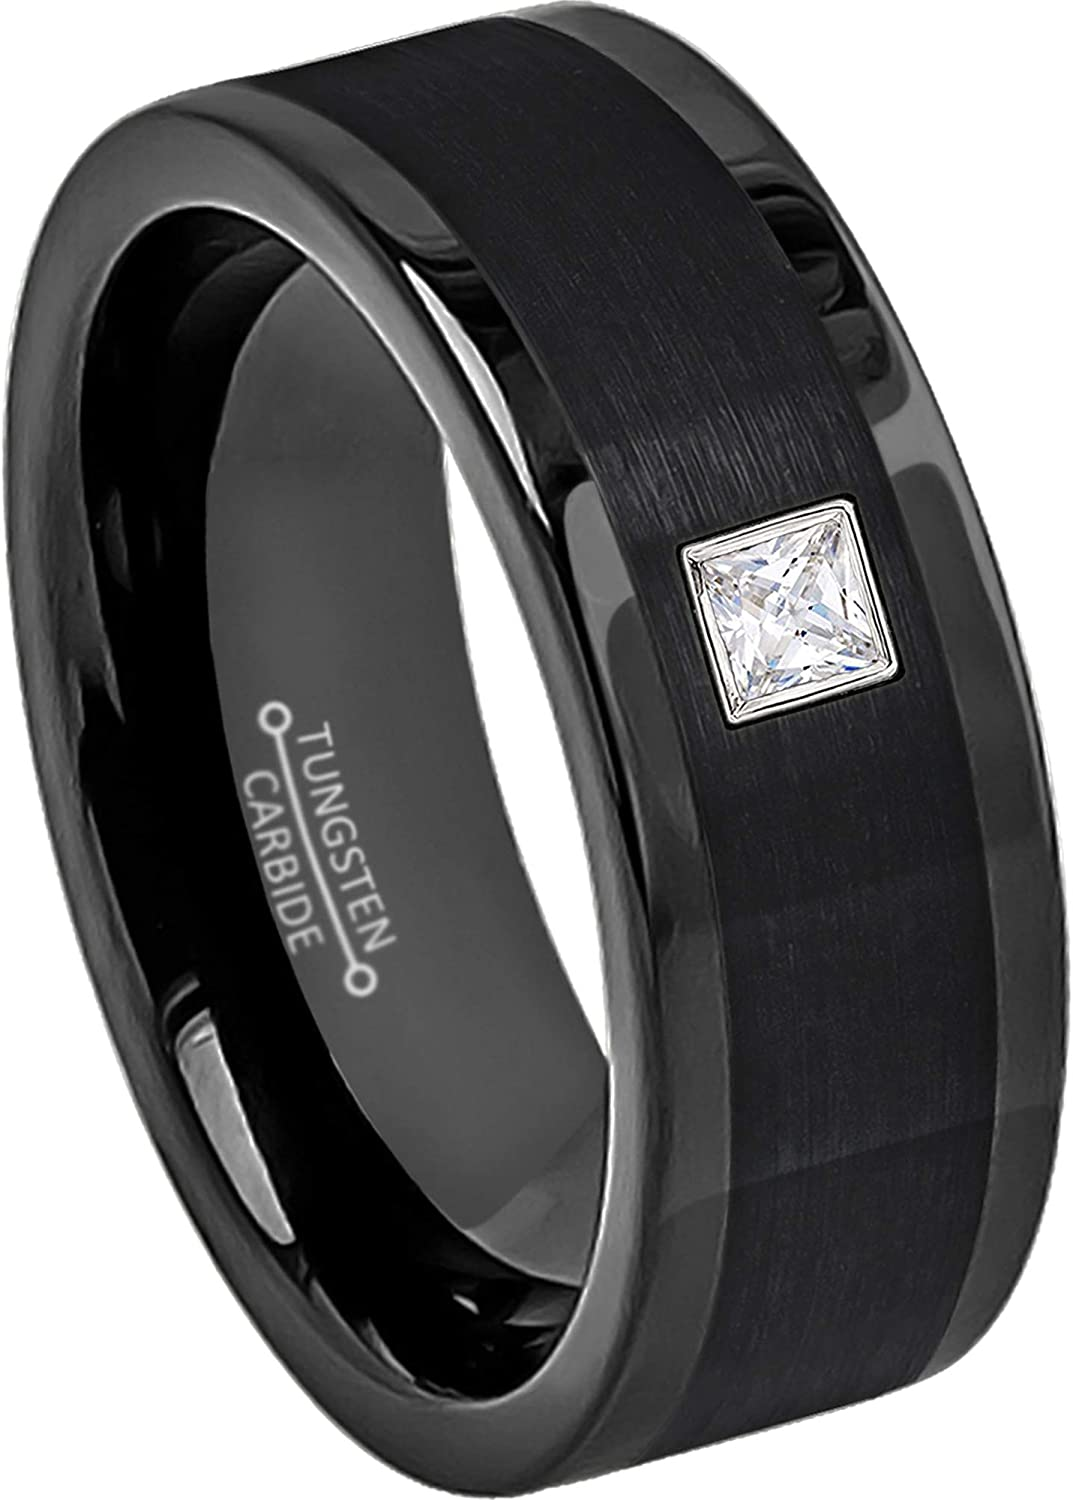 0.10ctw Solitaire Purchase Princess Cut Diamond Brush 8MM Ring Tungsten - Ranking TOP15